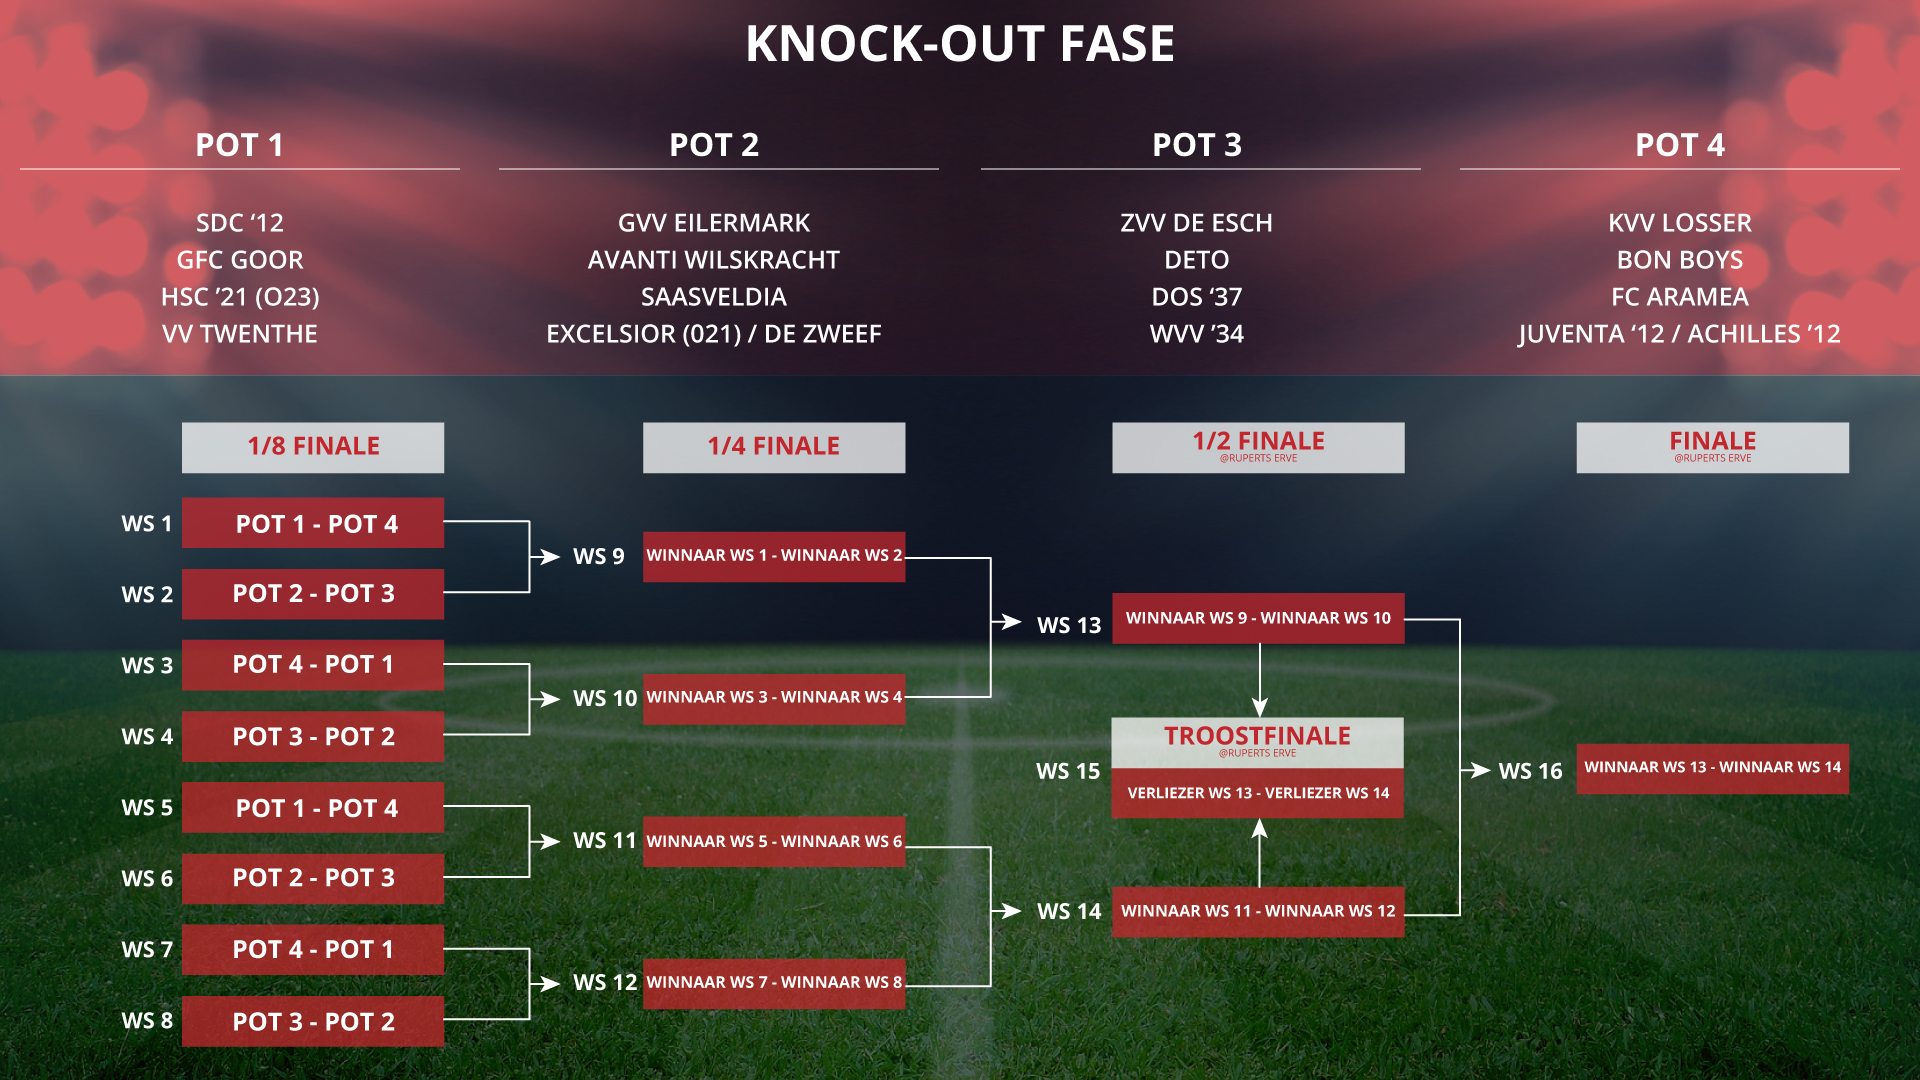 loting-knock-out-fase.jpg